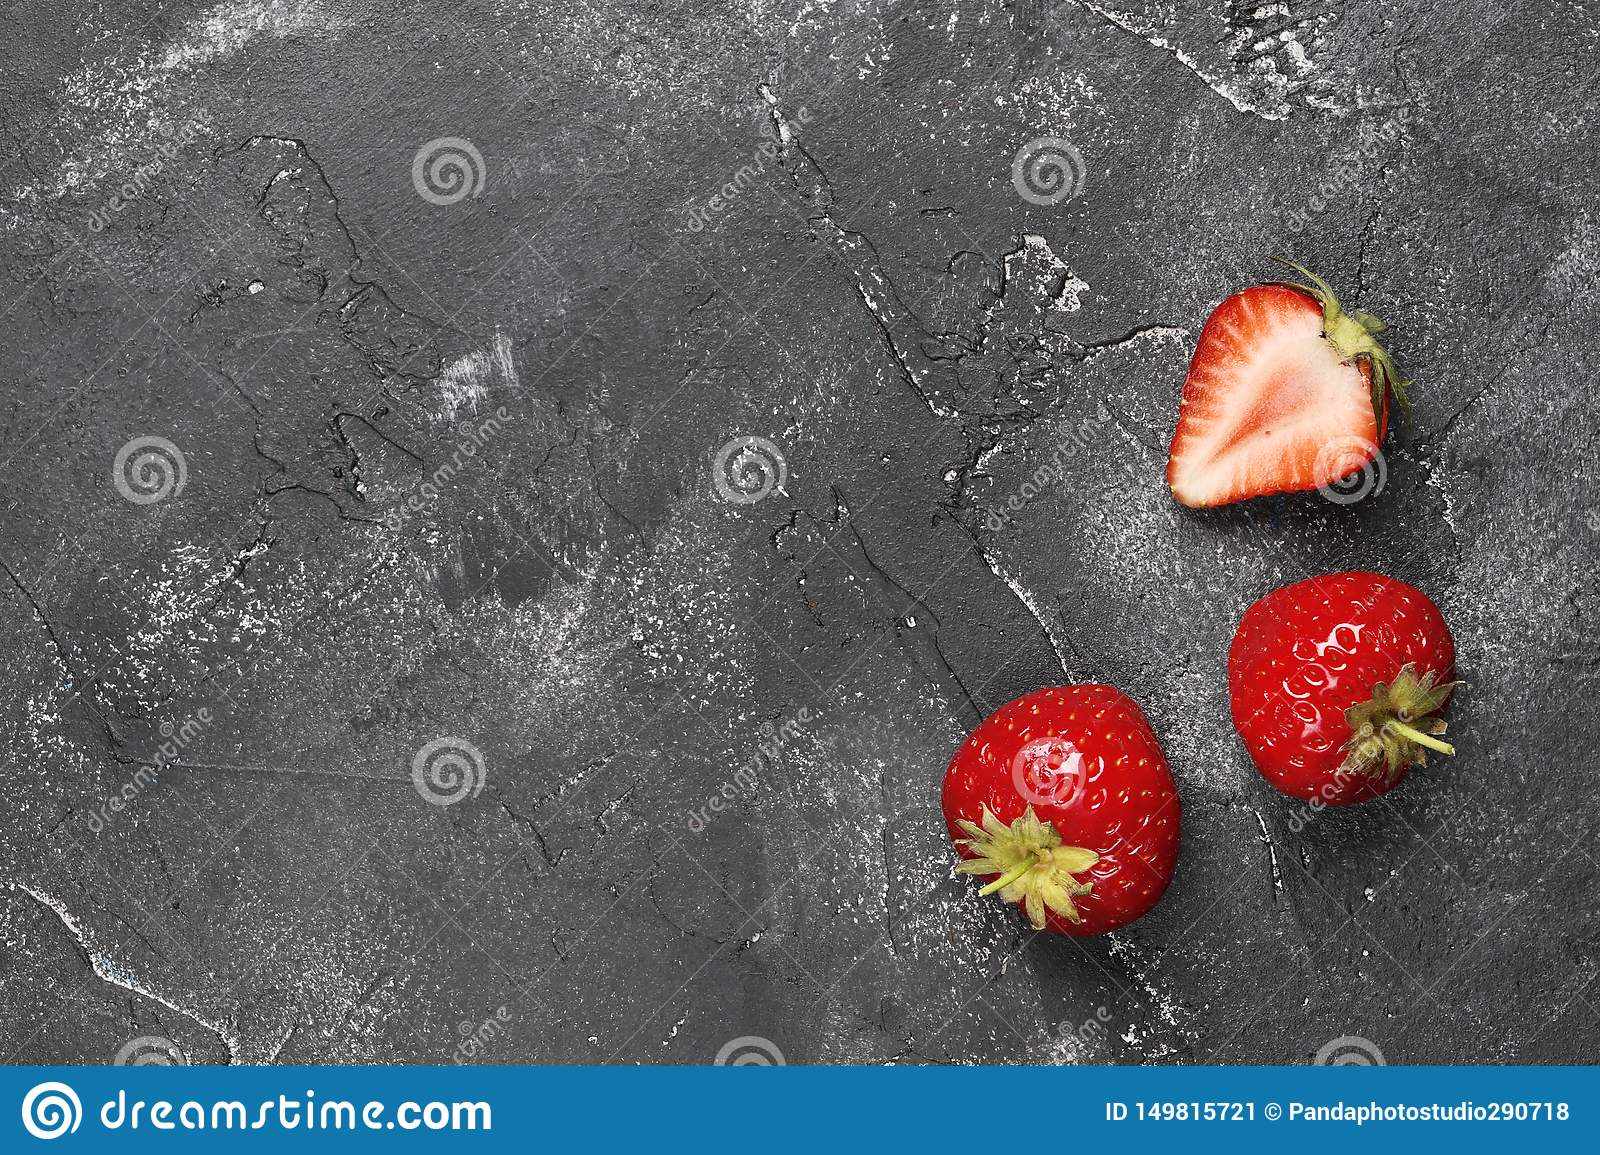 Flat lay composition of three ripe strawberries on a dark background